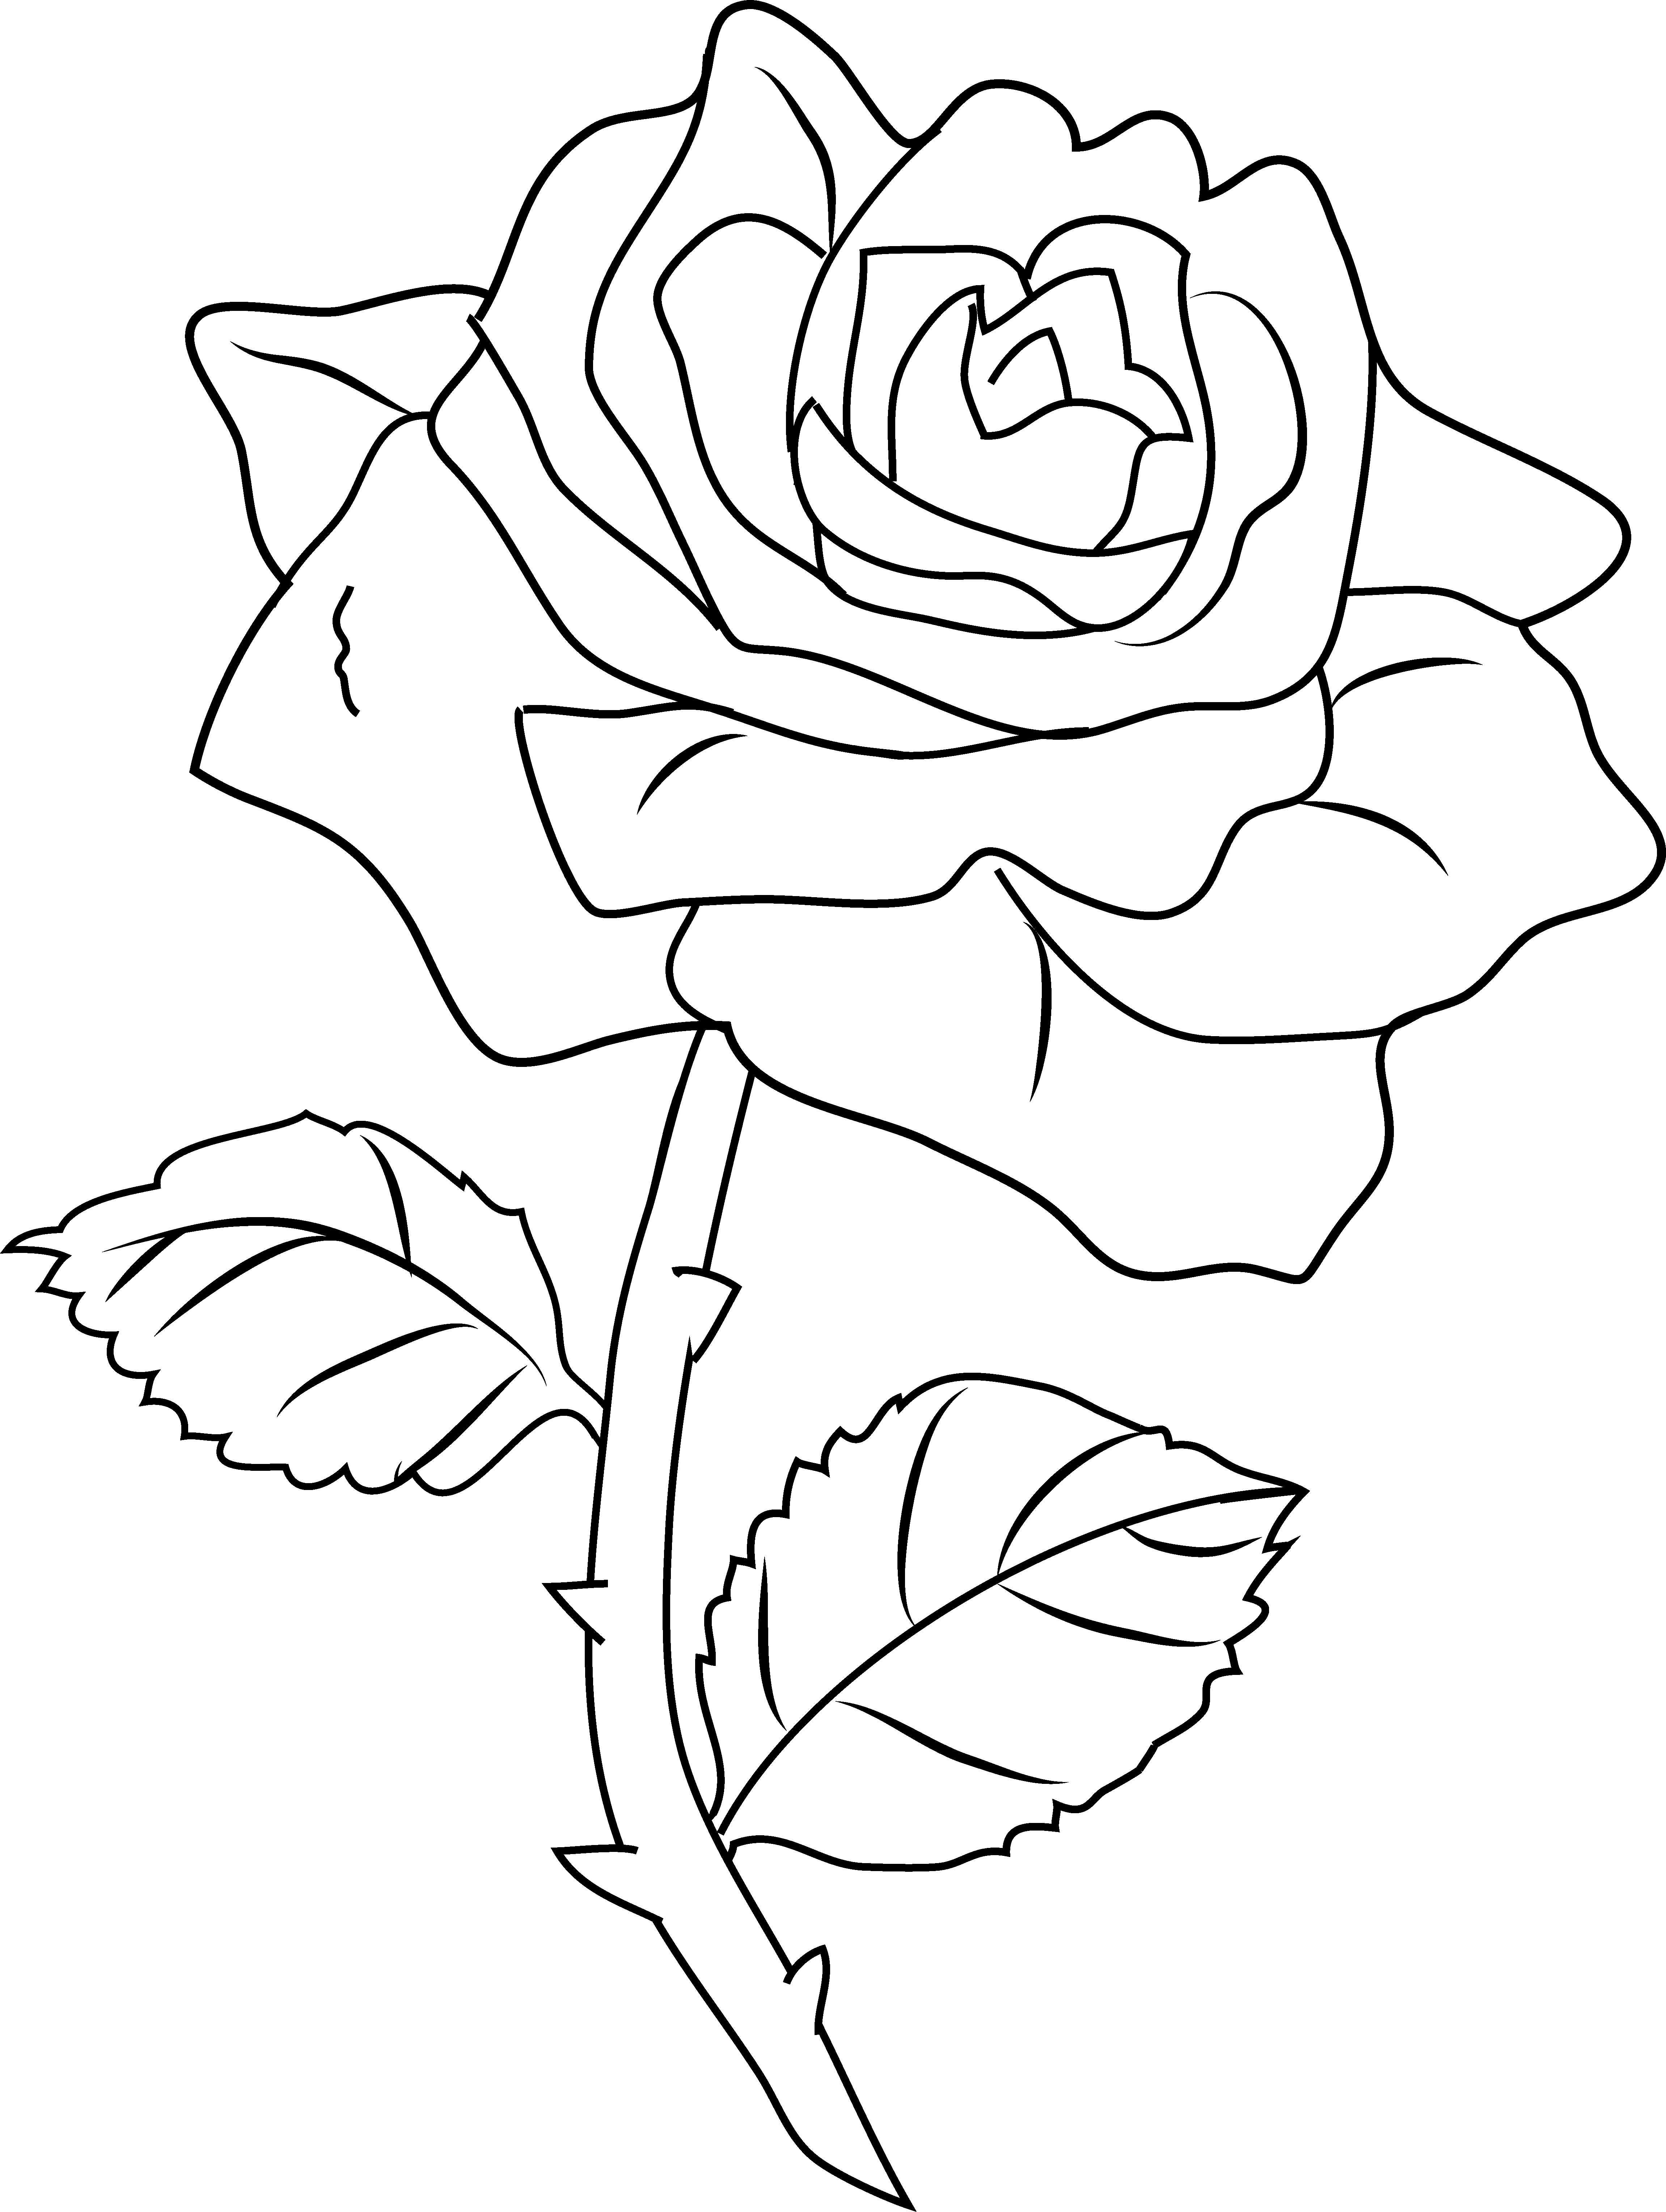 rose color page roses coloring pages to download and print for free page color rose